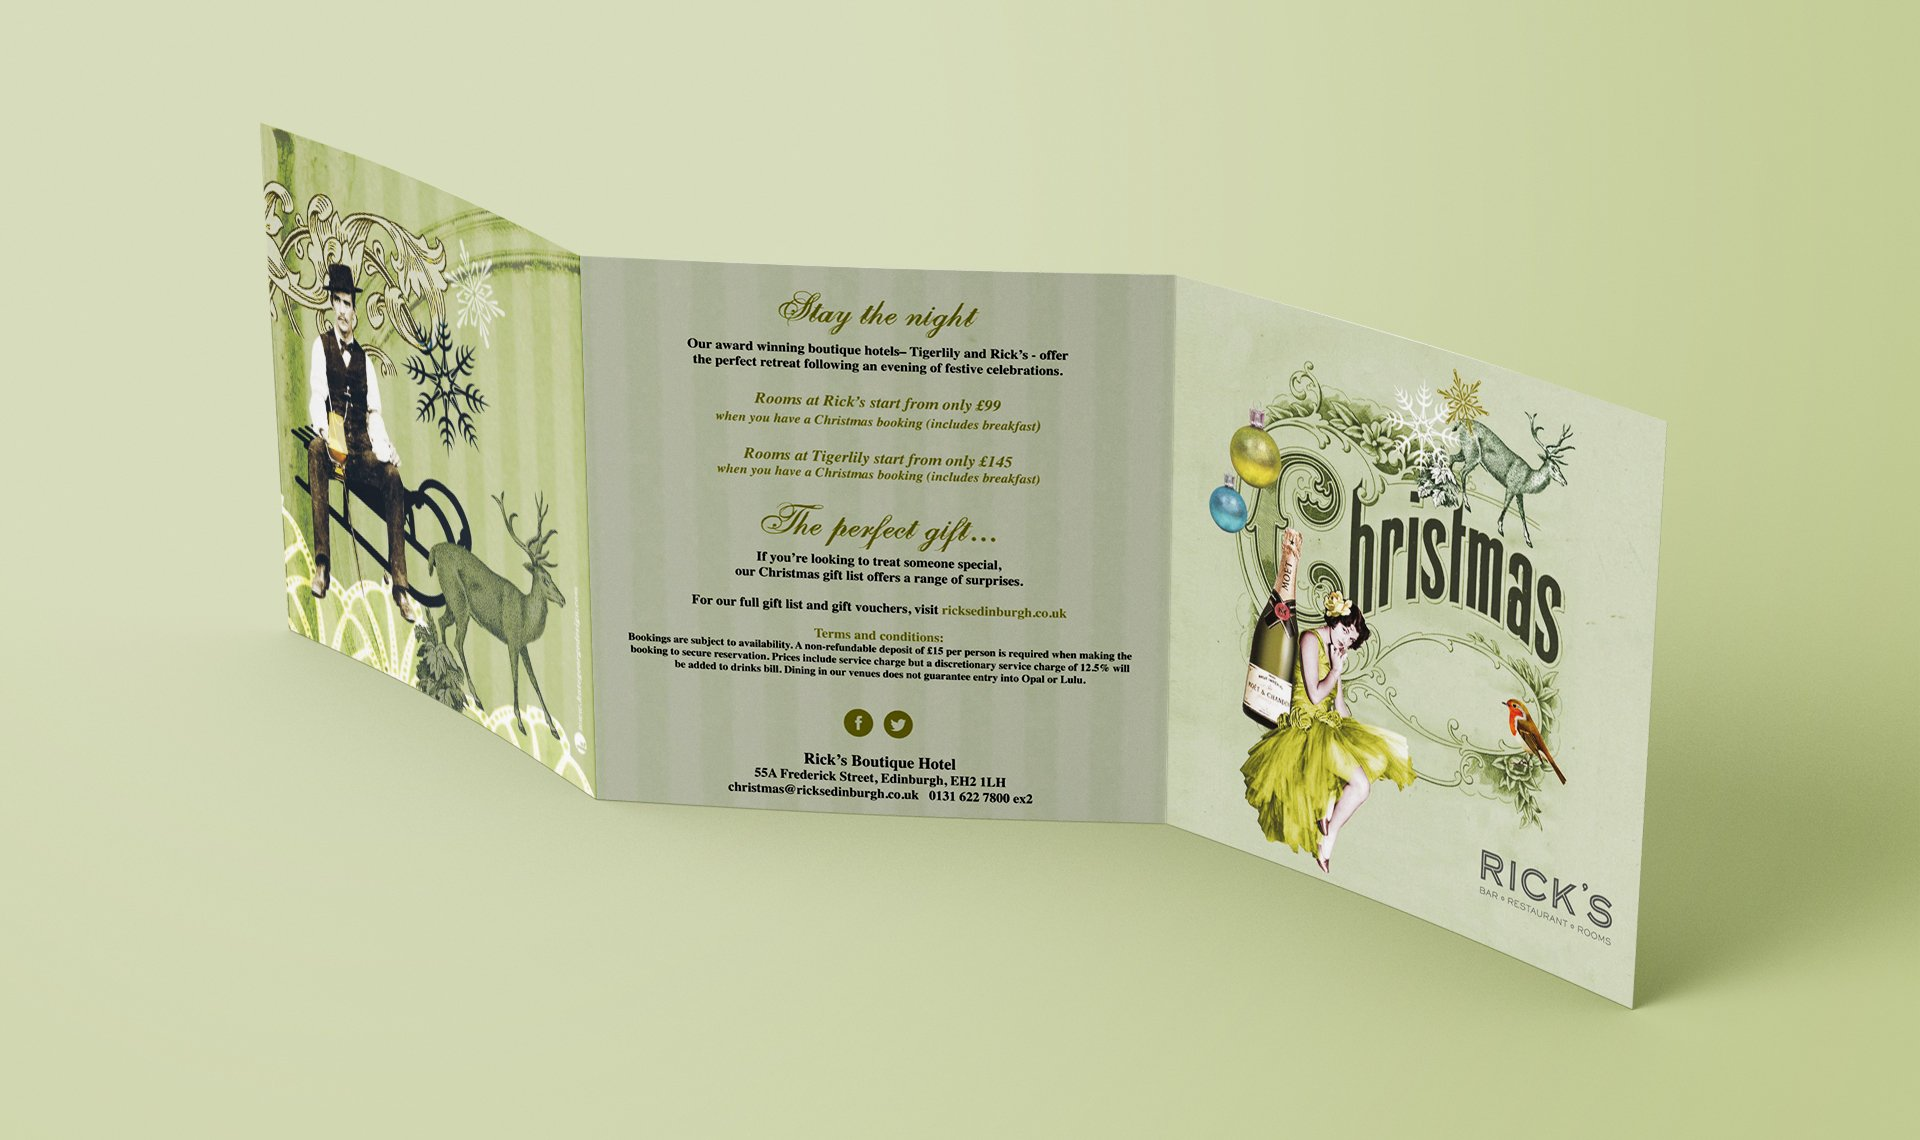 Rick's vintage inspired Christmas drinks menus